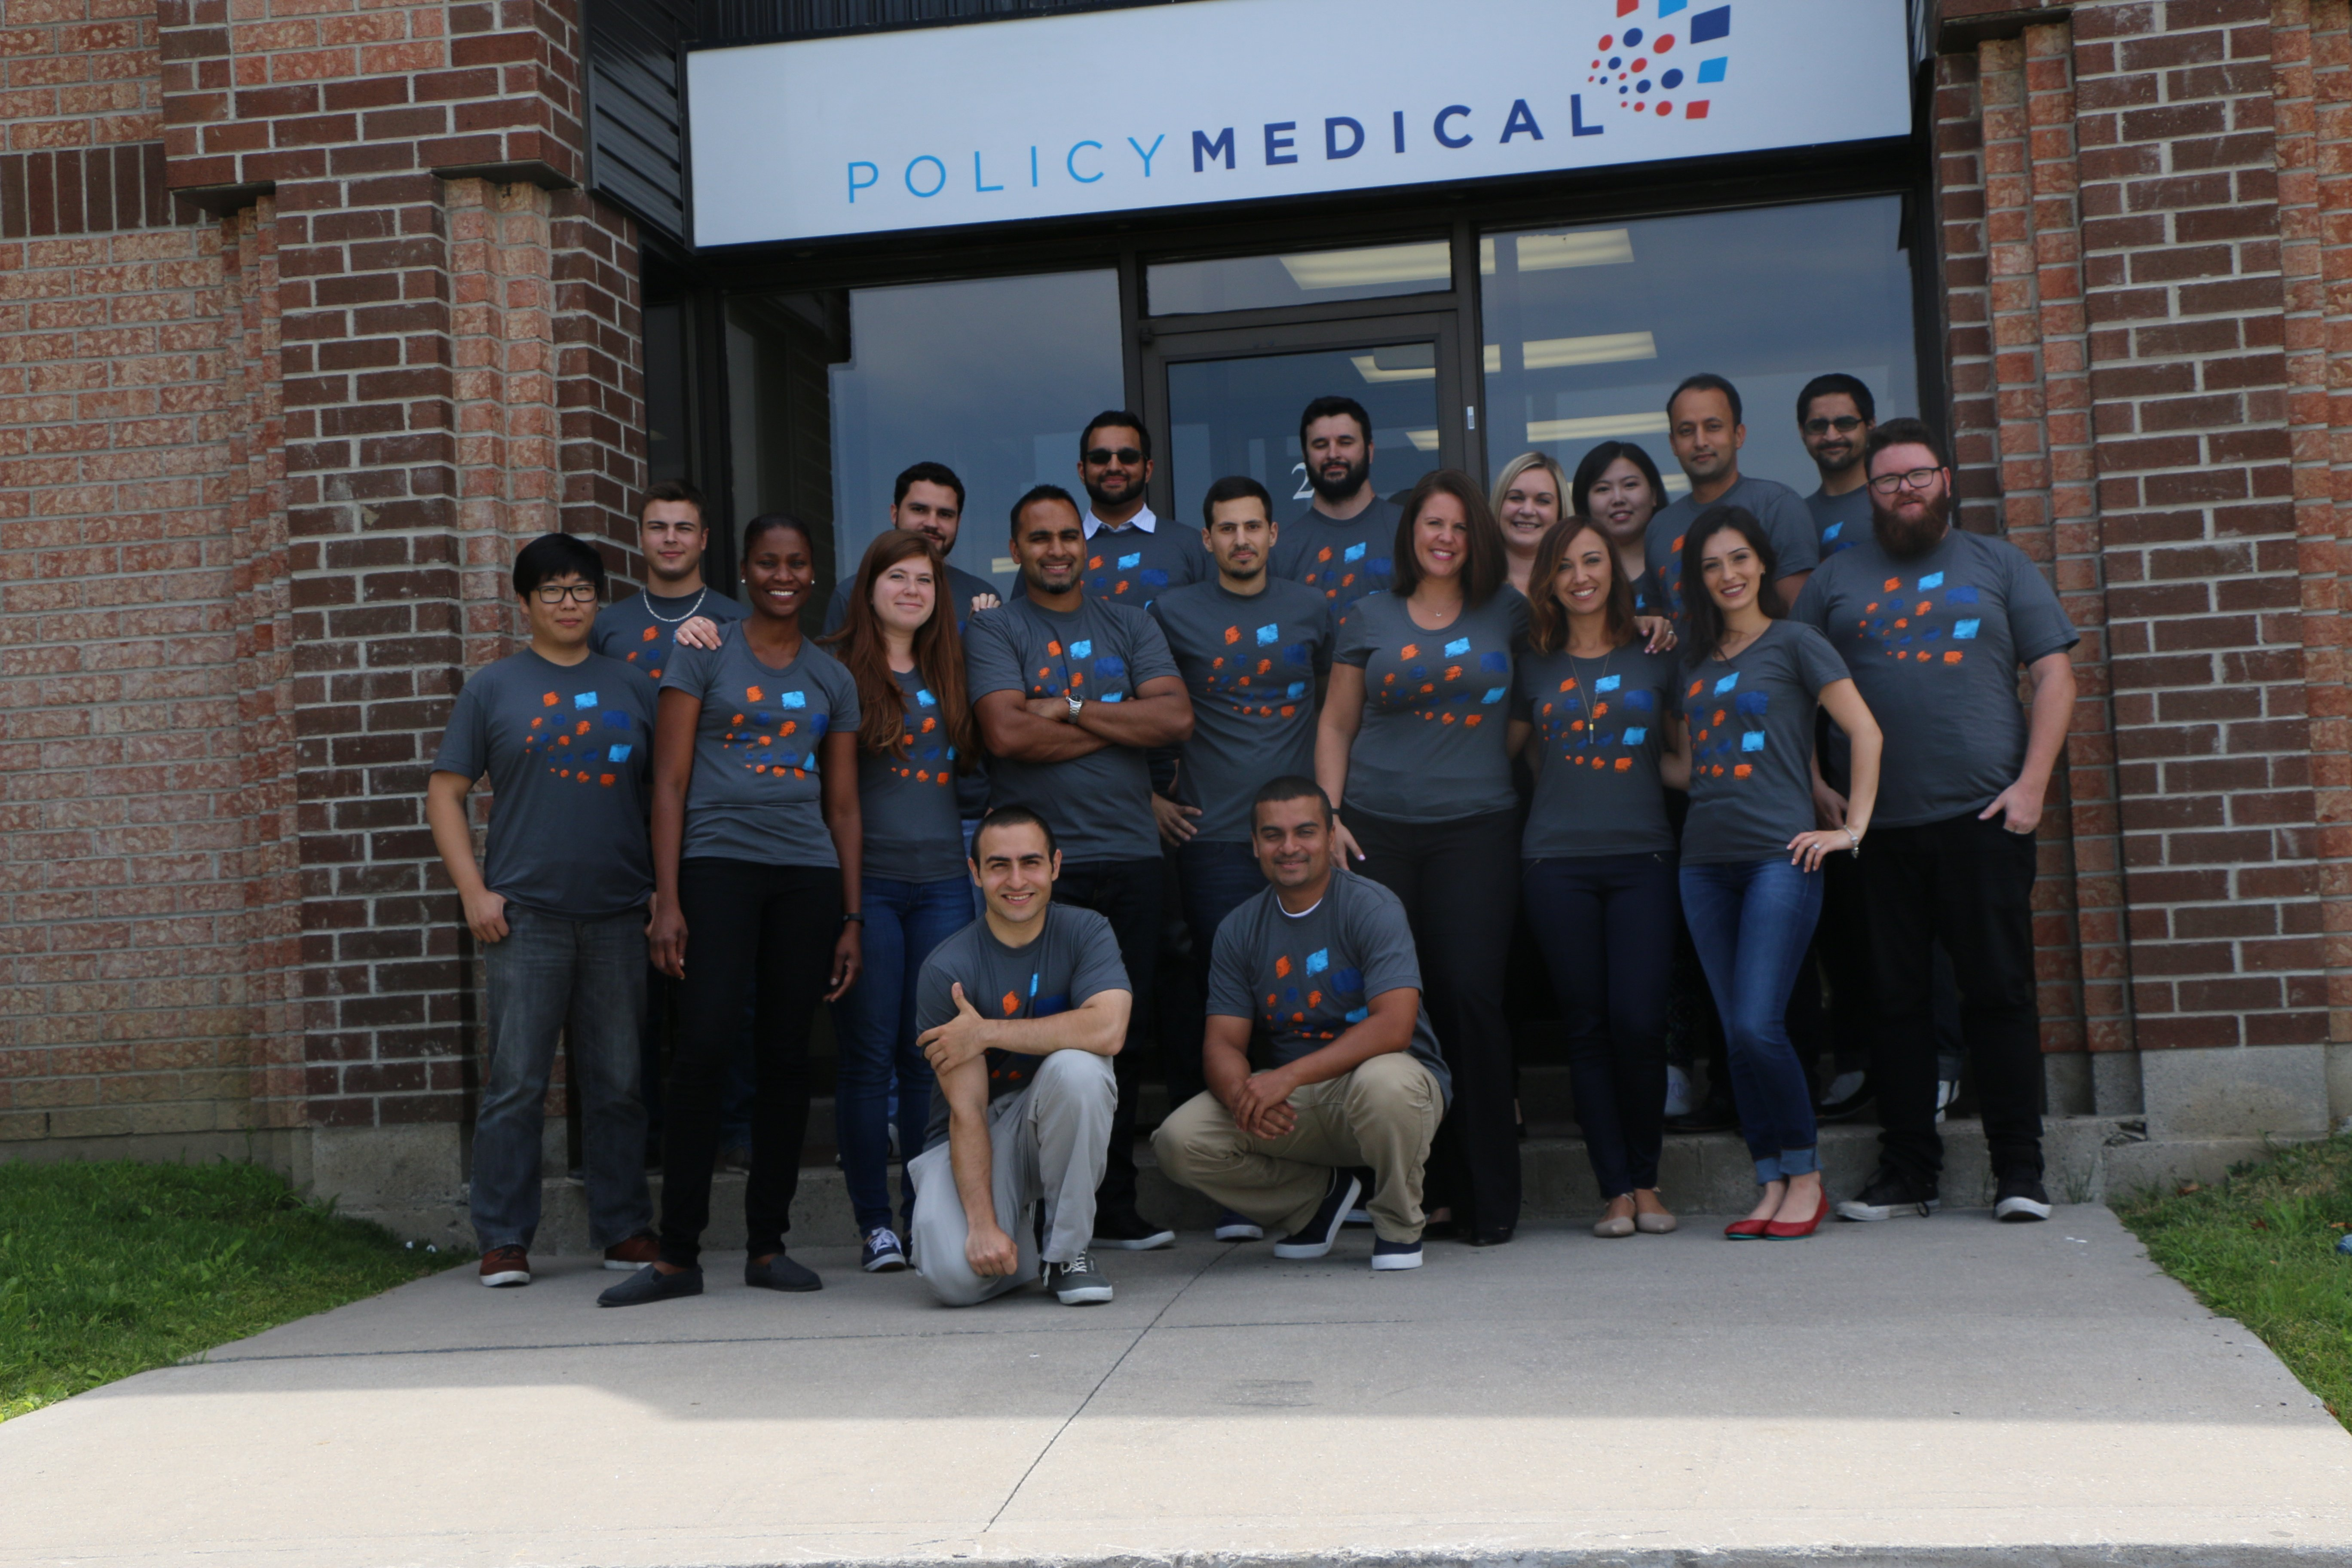 PolicyMedical staff